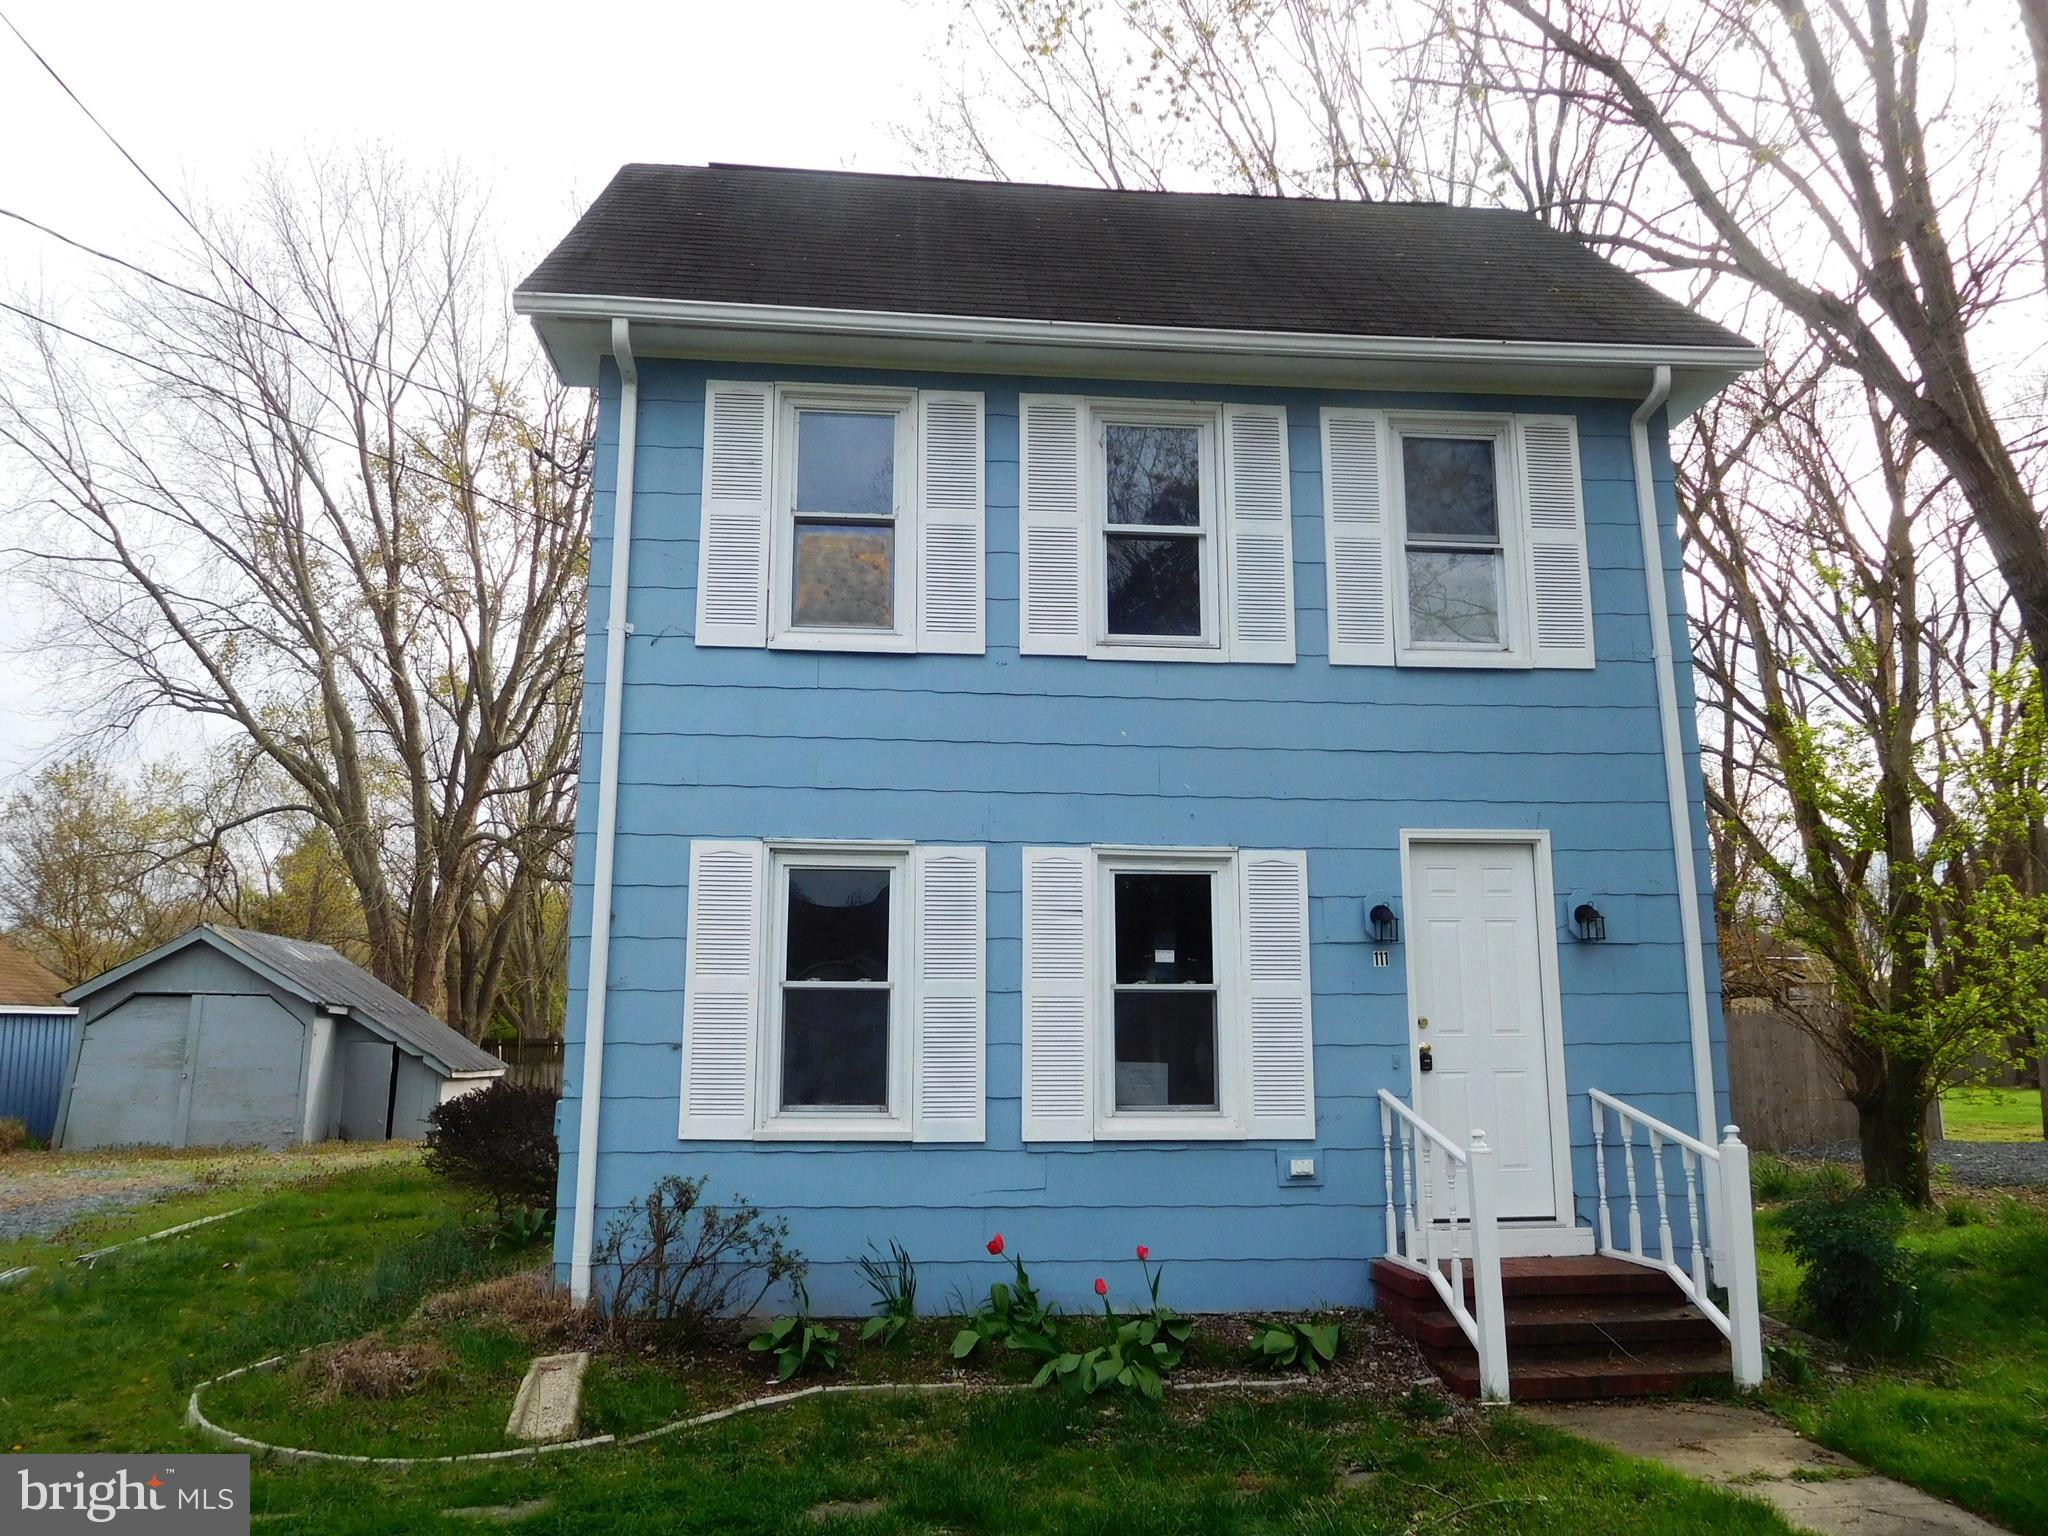 This charming home is located on a quiet street in the village of Dominion, just up the road from Li